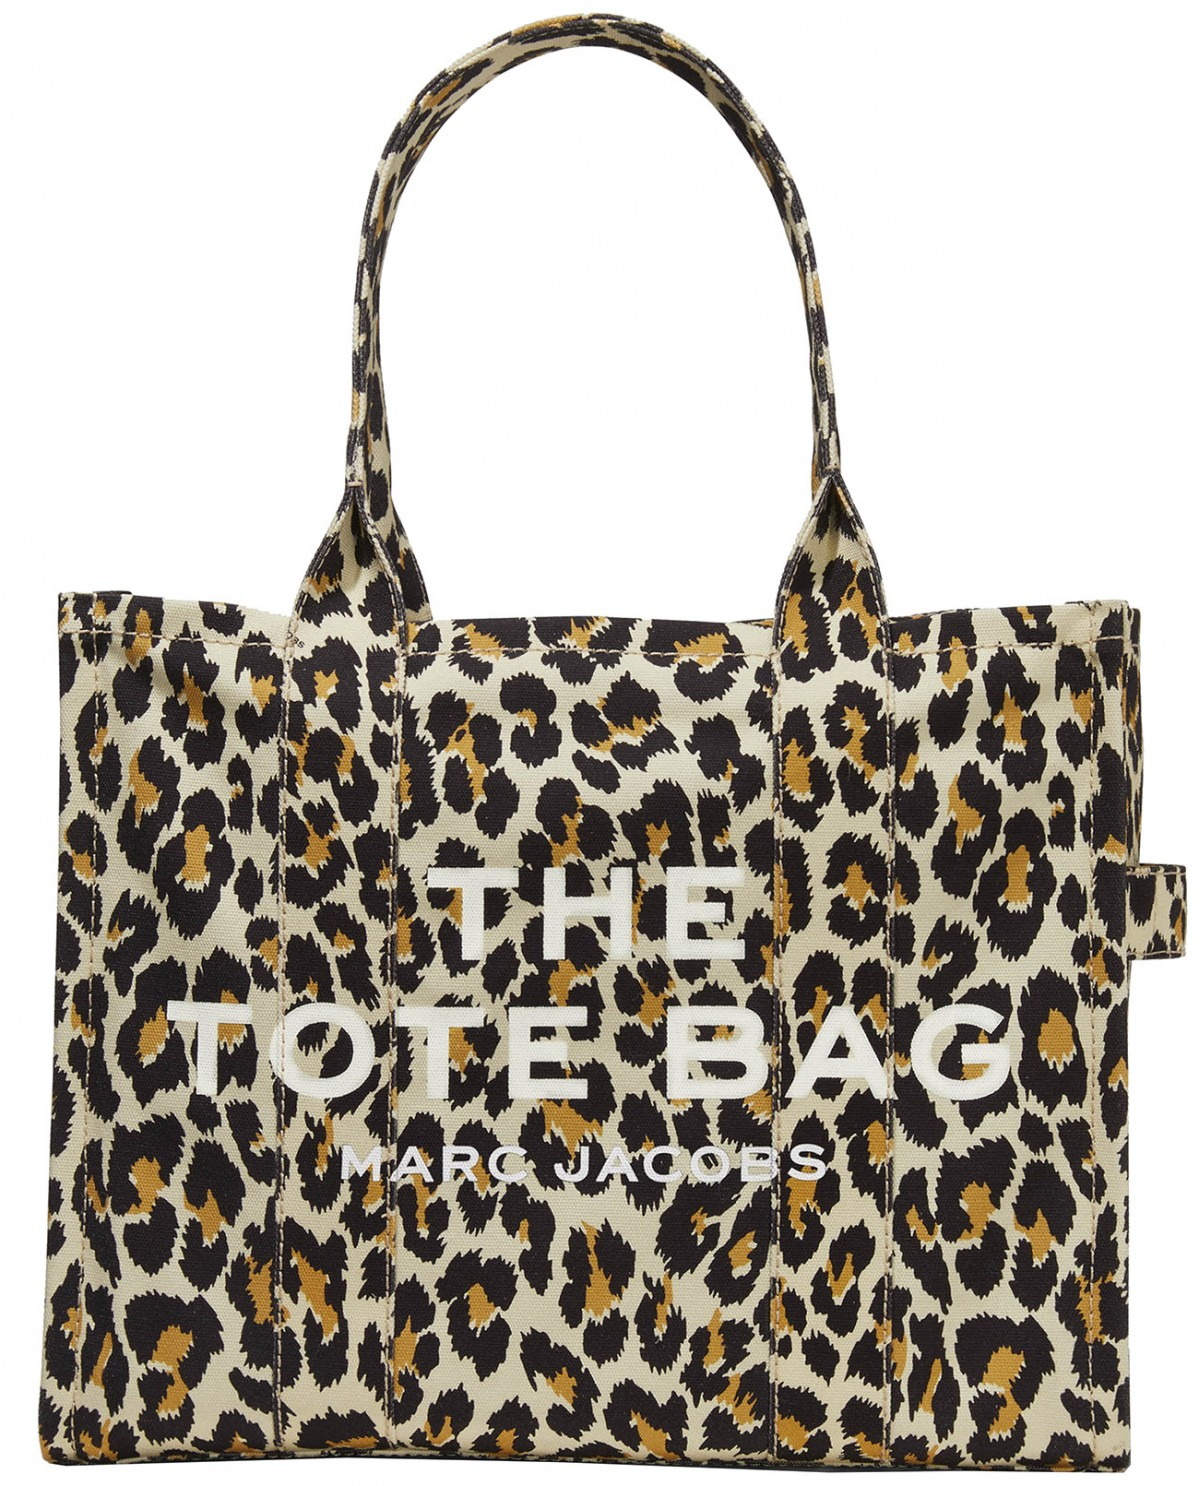 The Marc Jacobs leopard Traveler Tote